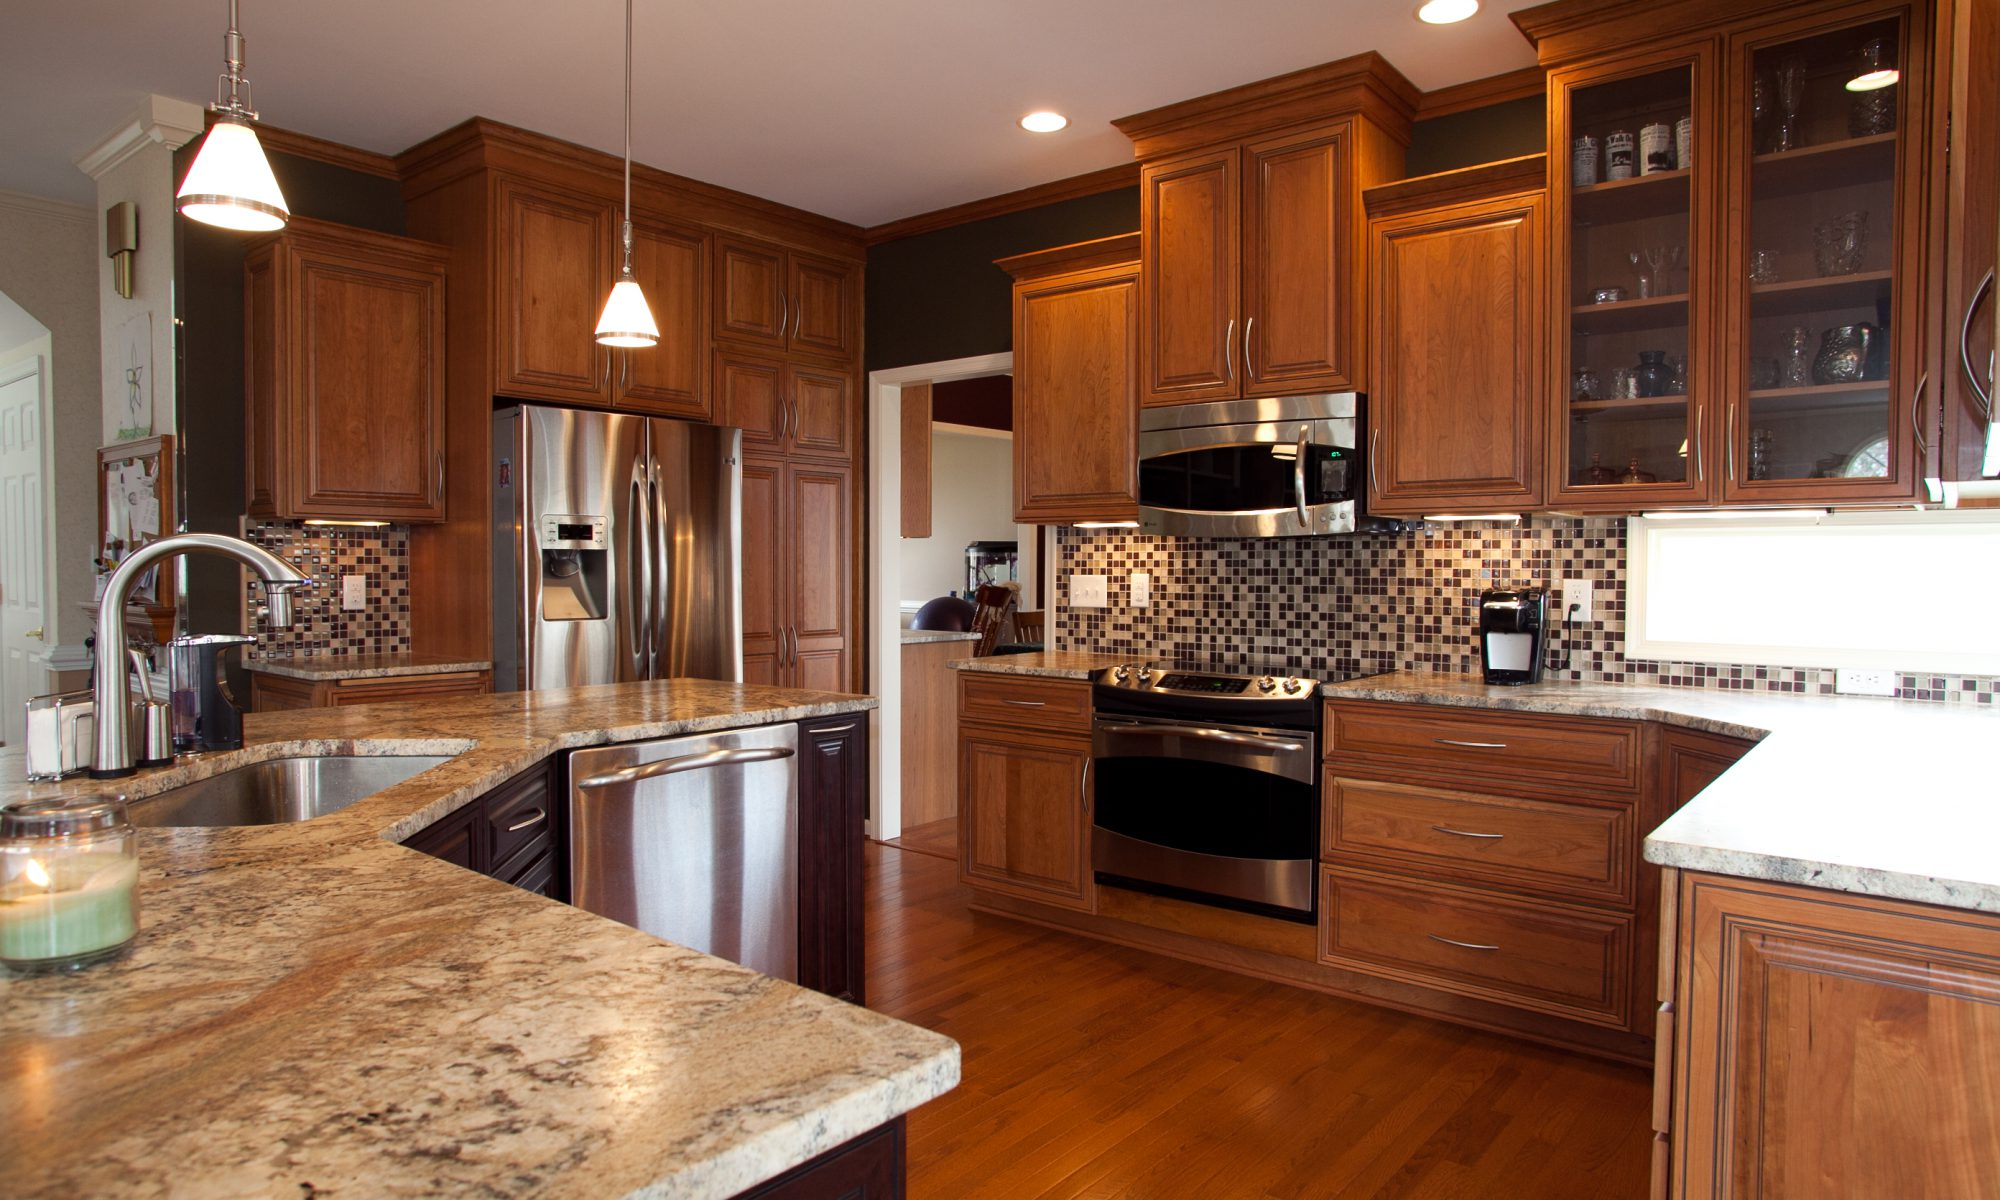 Kitchen remodeling made by KJ